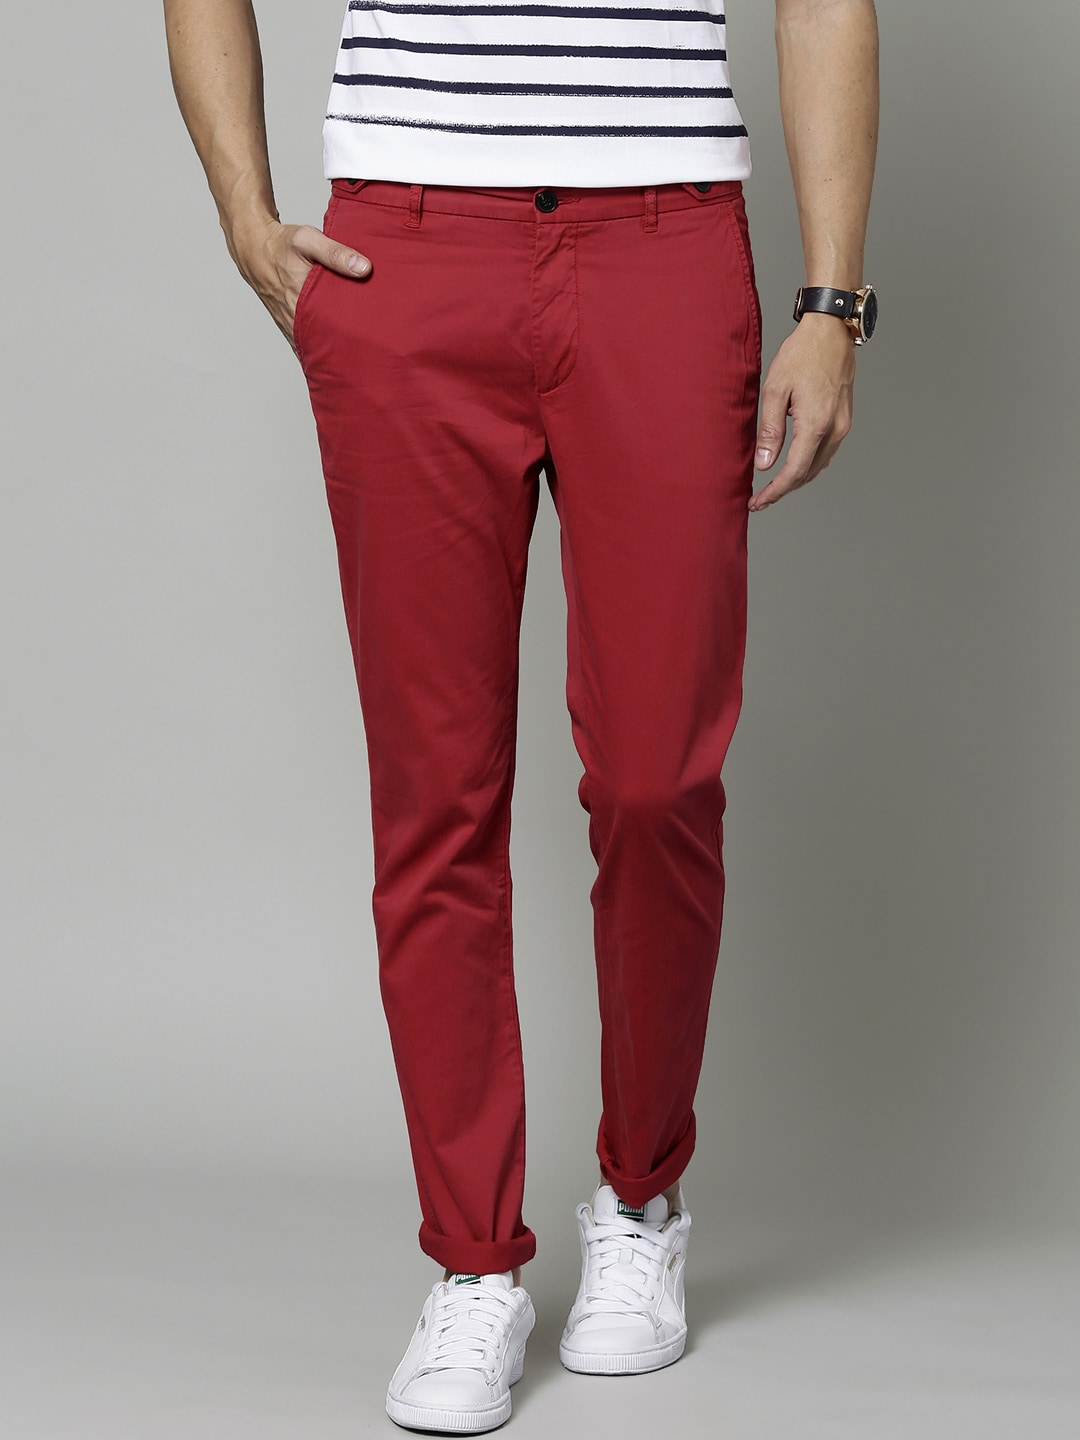 Images of Red Skinny Pants Men - The Fashions Of Paradise. Images Of Red  Skinny Pants Men The Fashions Of Paradise - Mens Red Skinny Jeans Photo Album - Watch Out, There's A Clothes About